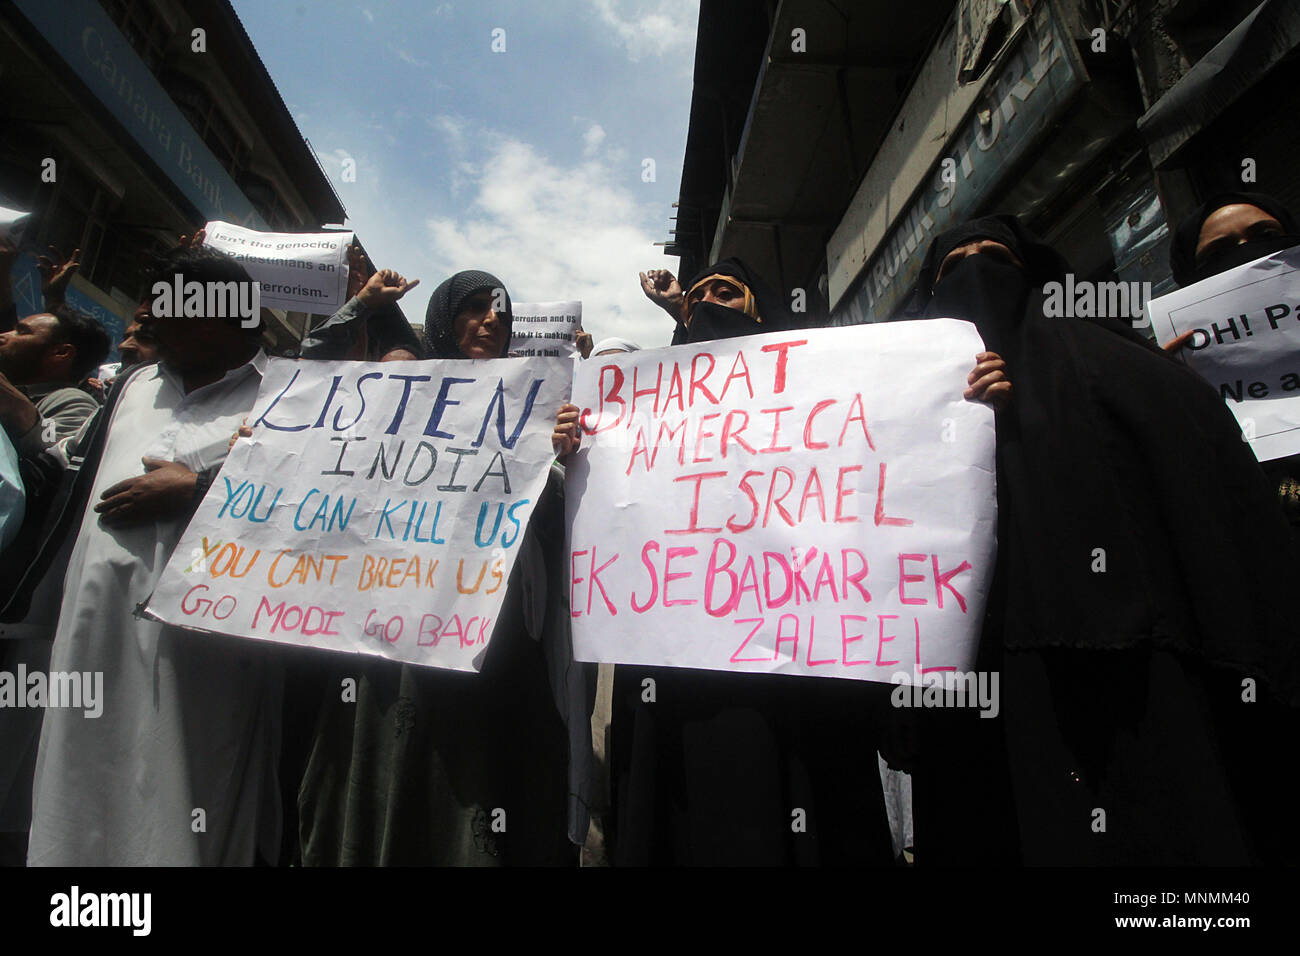 Srinagar, Jammu and Kashmir. 18th May, 2018. Activists and members of Joint Resistance Leadership (JRL) of Kashmir hold placards as they shout anti-Israel slogans during the protest in Srinagar the summer capital of Indian controlled Kashmir on May 18, 2018. More than 60 Palestinian protesters have been killed after Israeli forces opened fire on the Gaza border on May 14, who had assembled alongside the fence to protest against the moving of United State's embassy from Tel Aviv to Jerusalem. - Stock Image